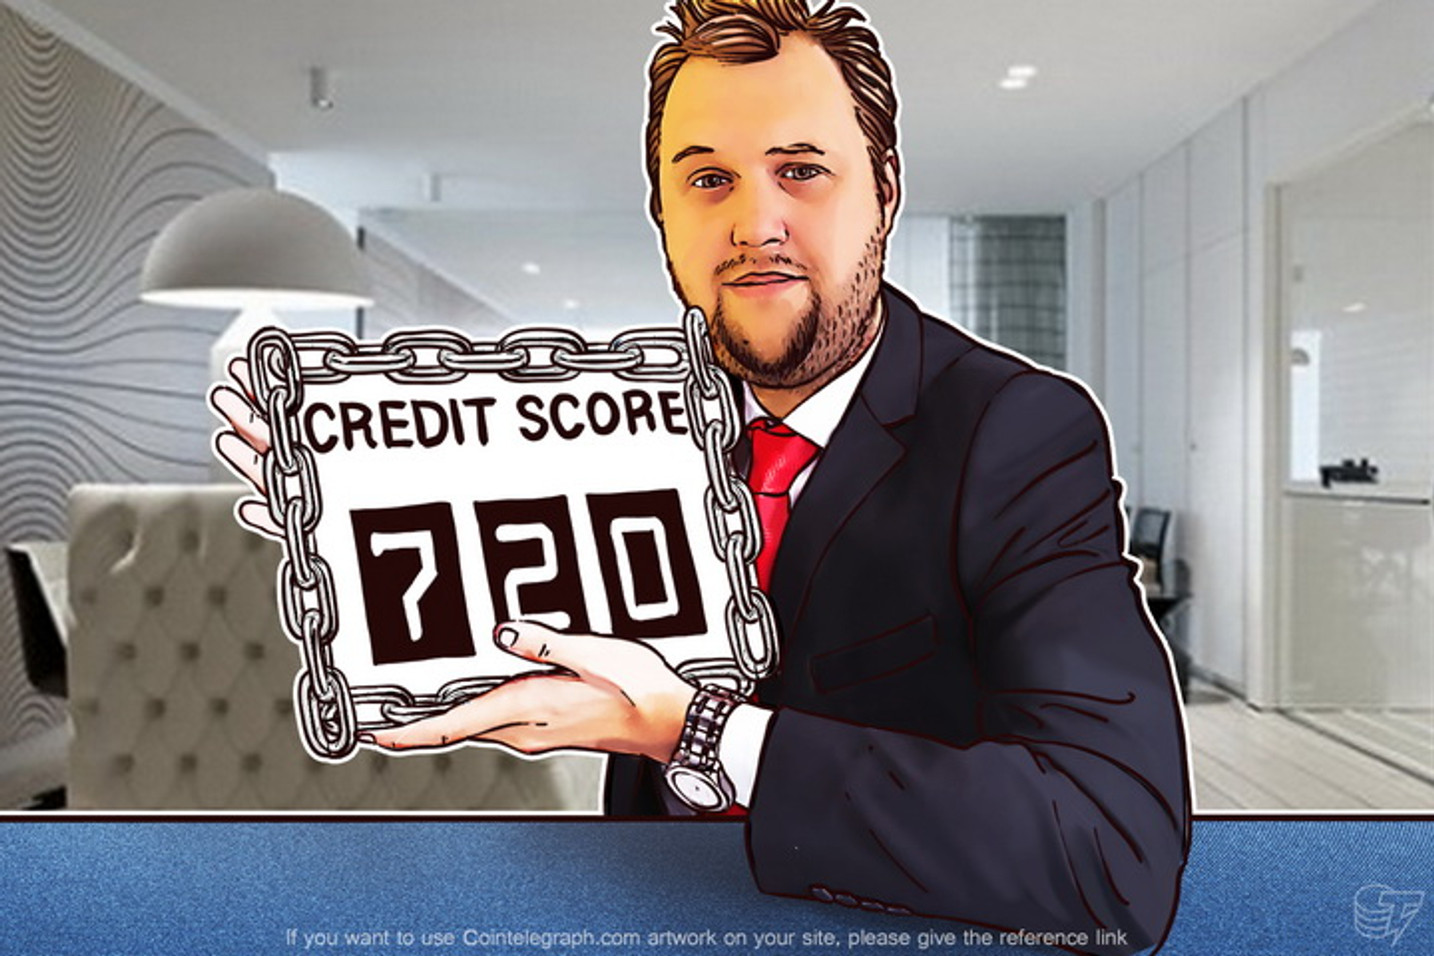 Blockchain-Based Credit Score Coming in 2016, forecasts Yandex, the 4th largest search engine worldwide